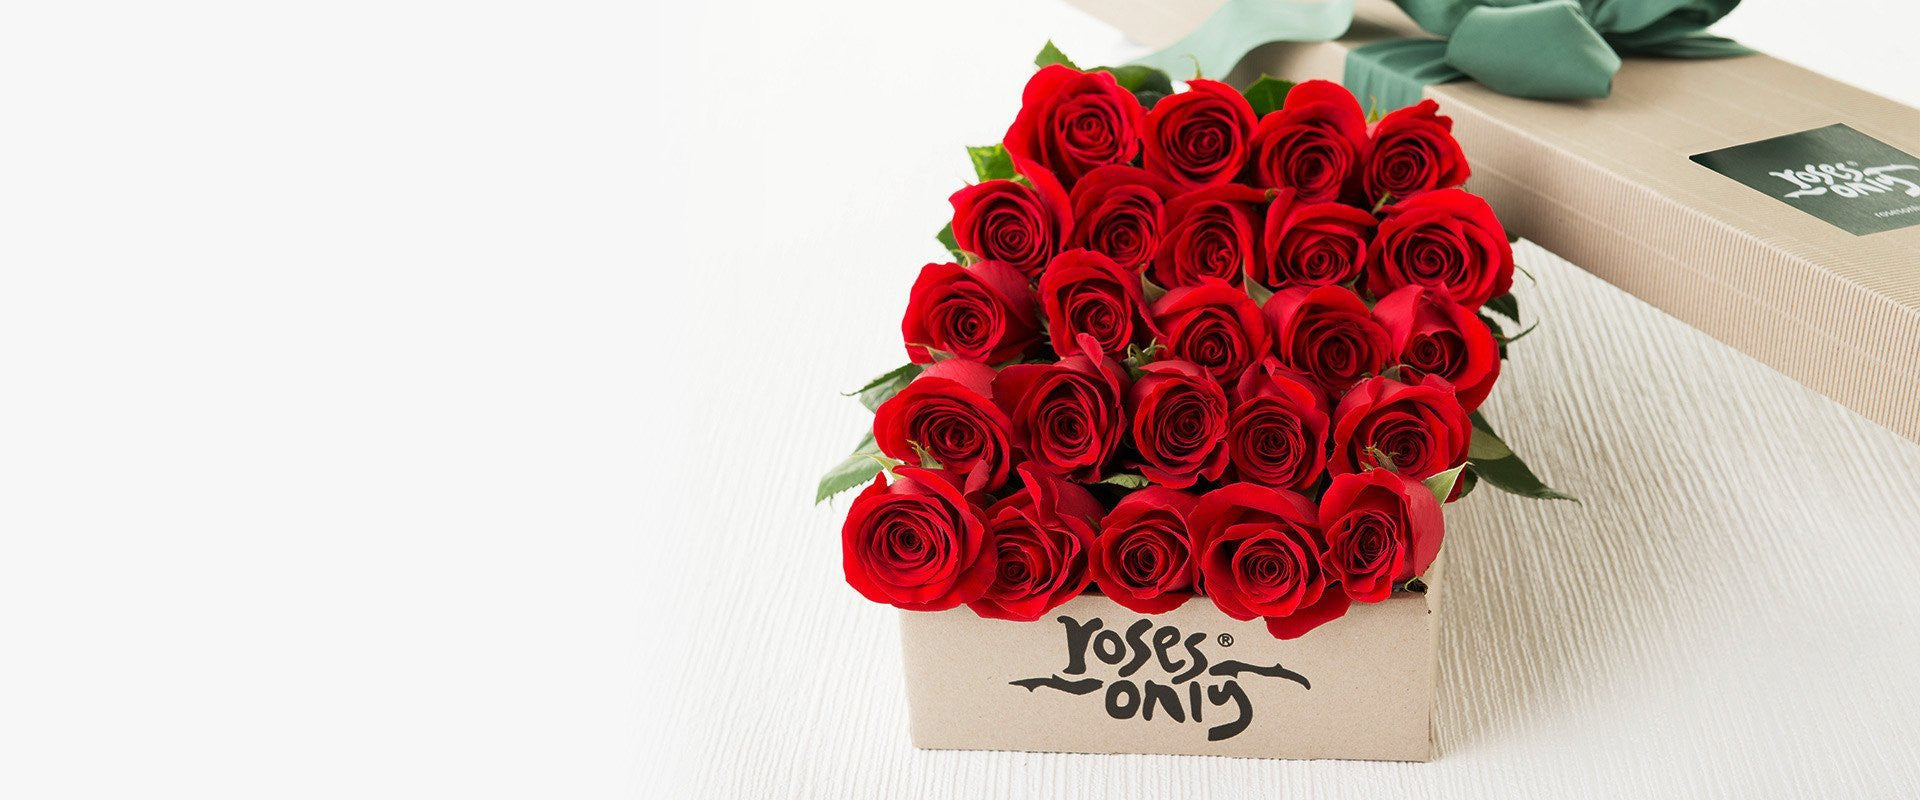 (24 gestures {of love} with our) 24 Long Stemmed Red Roses in Gift Box